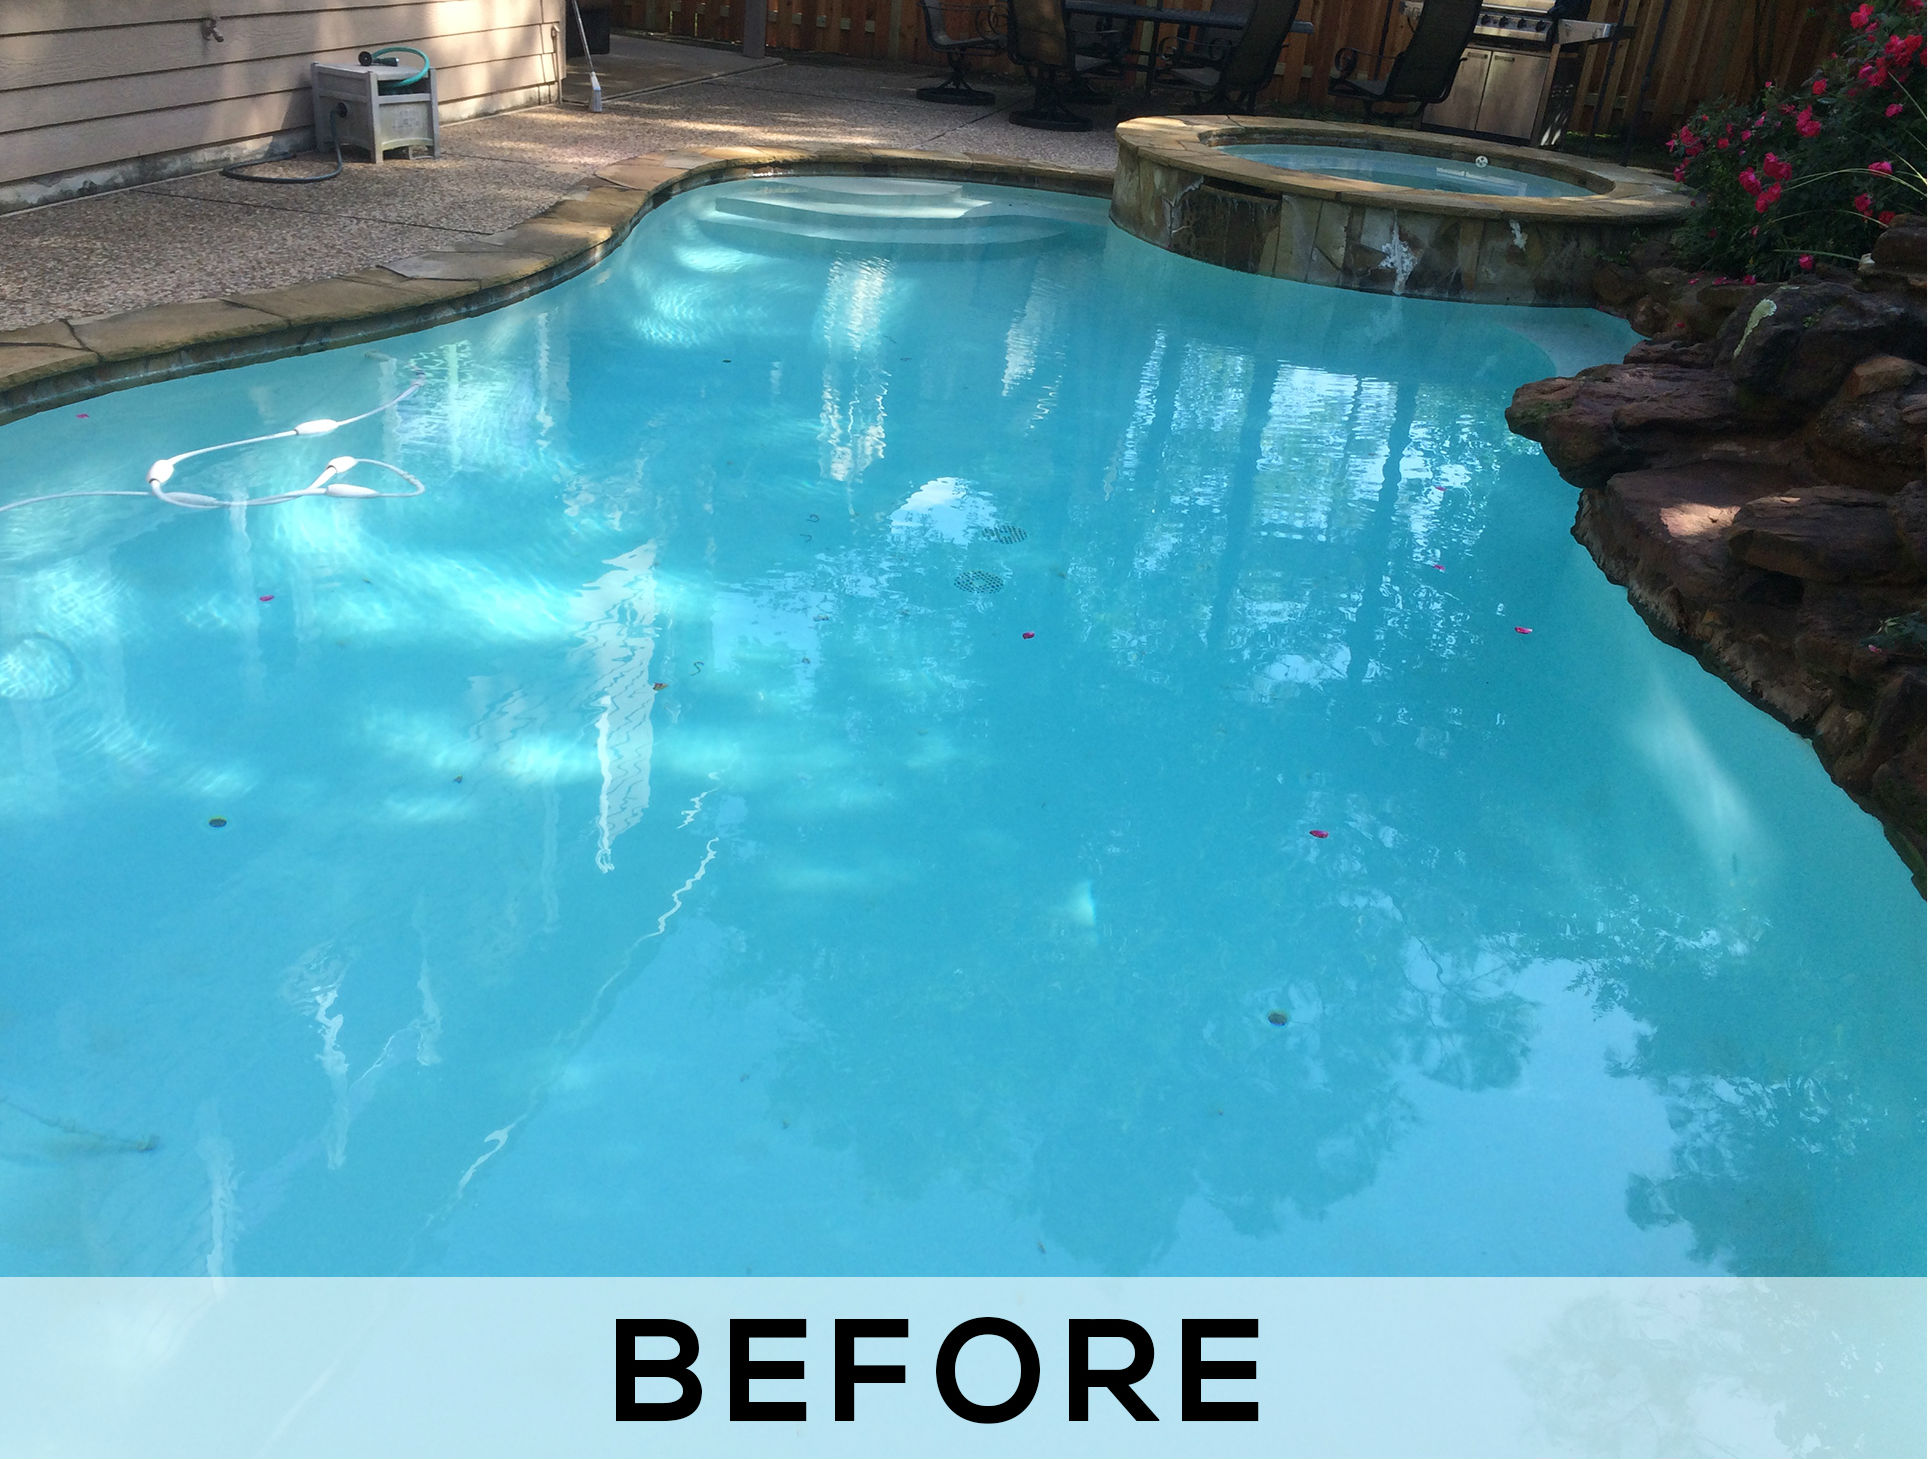 Pool Resurfacing Services - Before